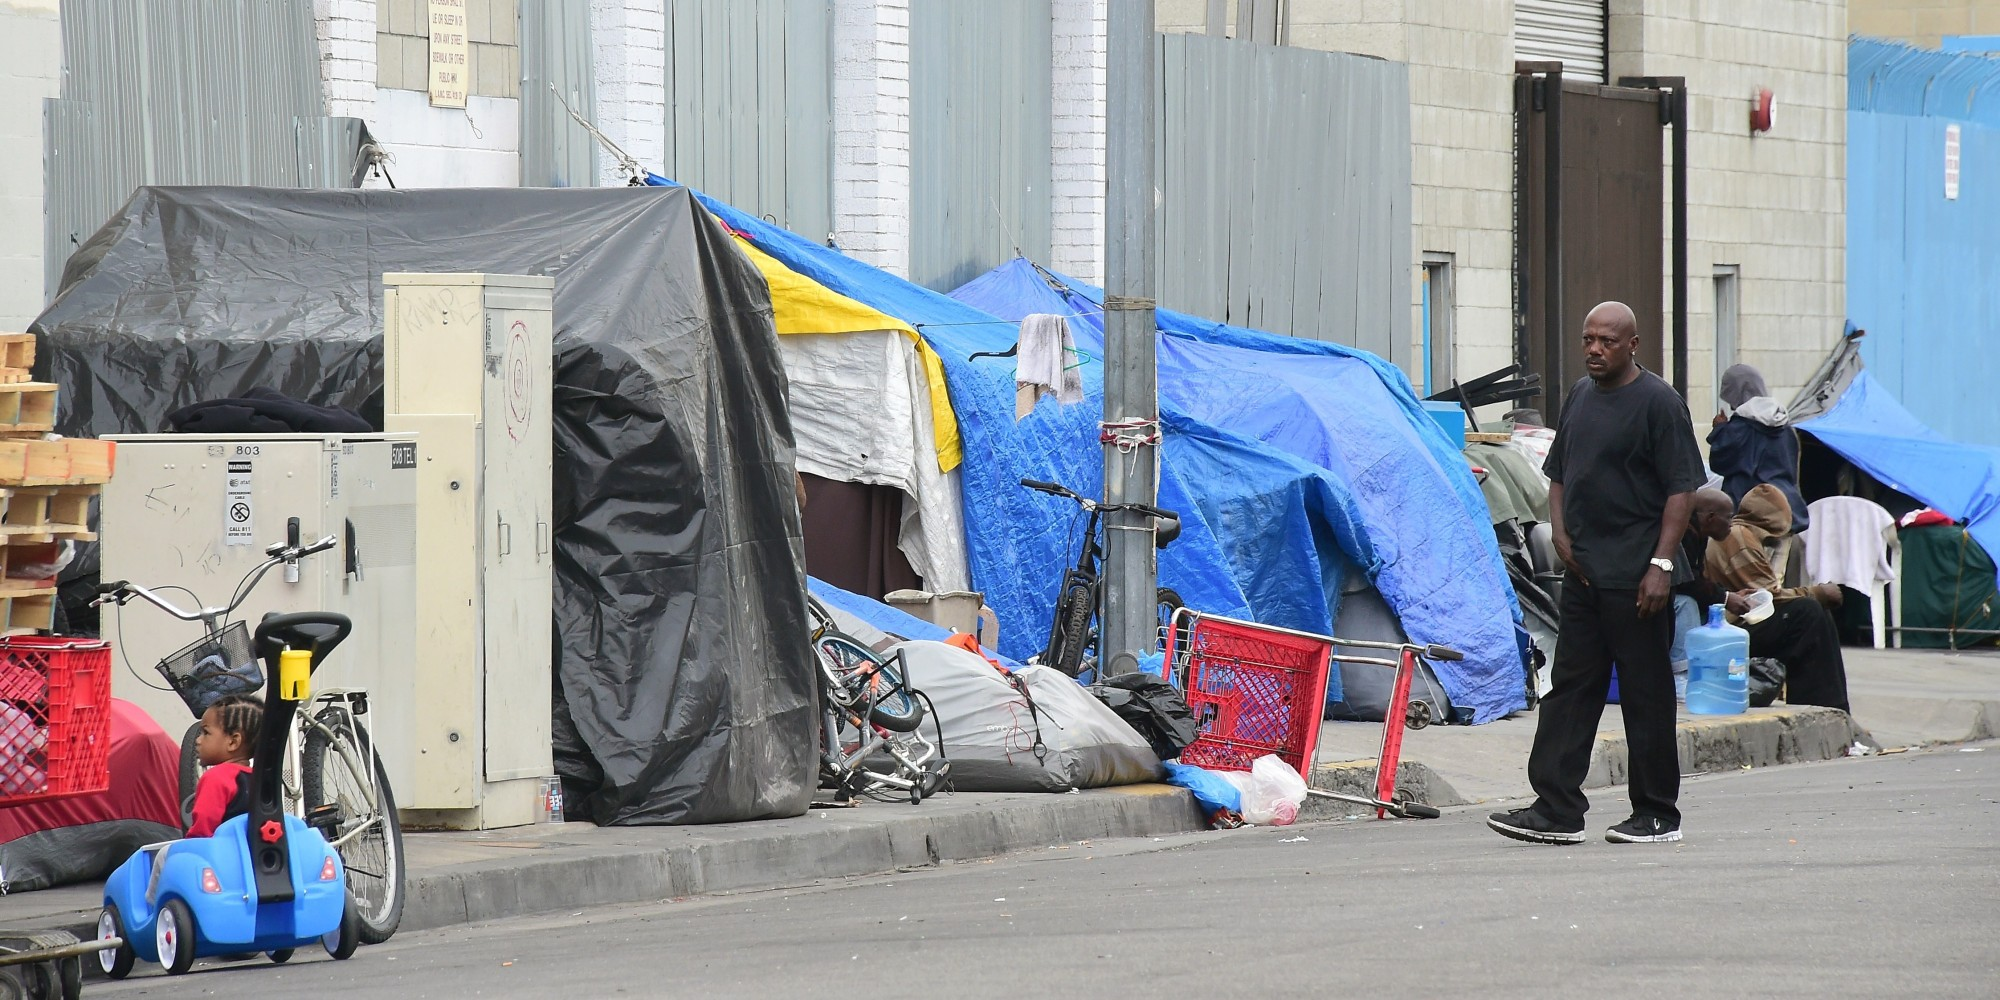 California Has Highest Rate Of Poverty In The Nation, According To U.S. Census Bureau